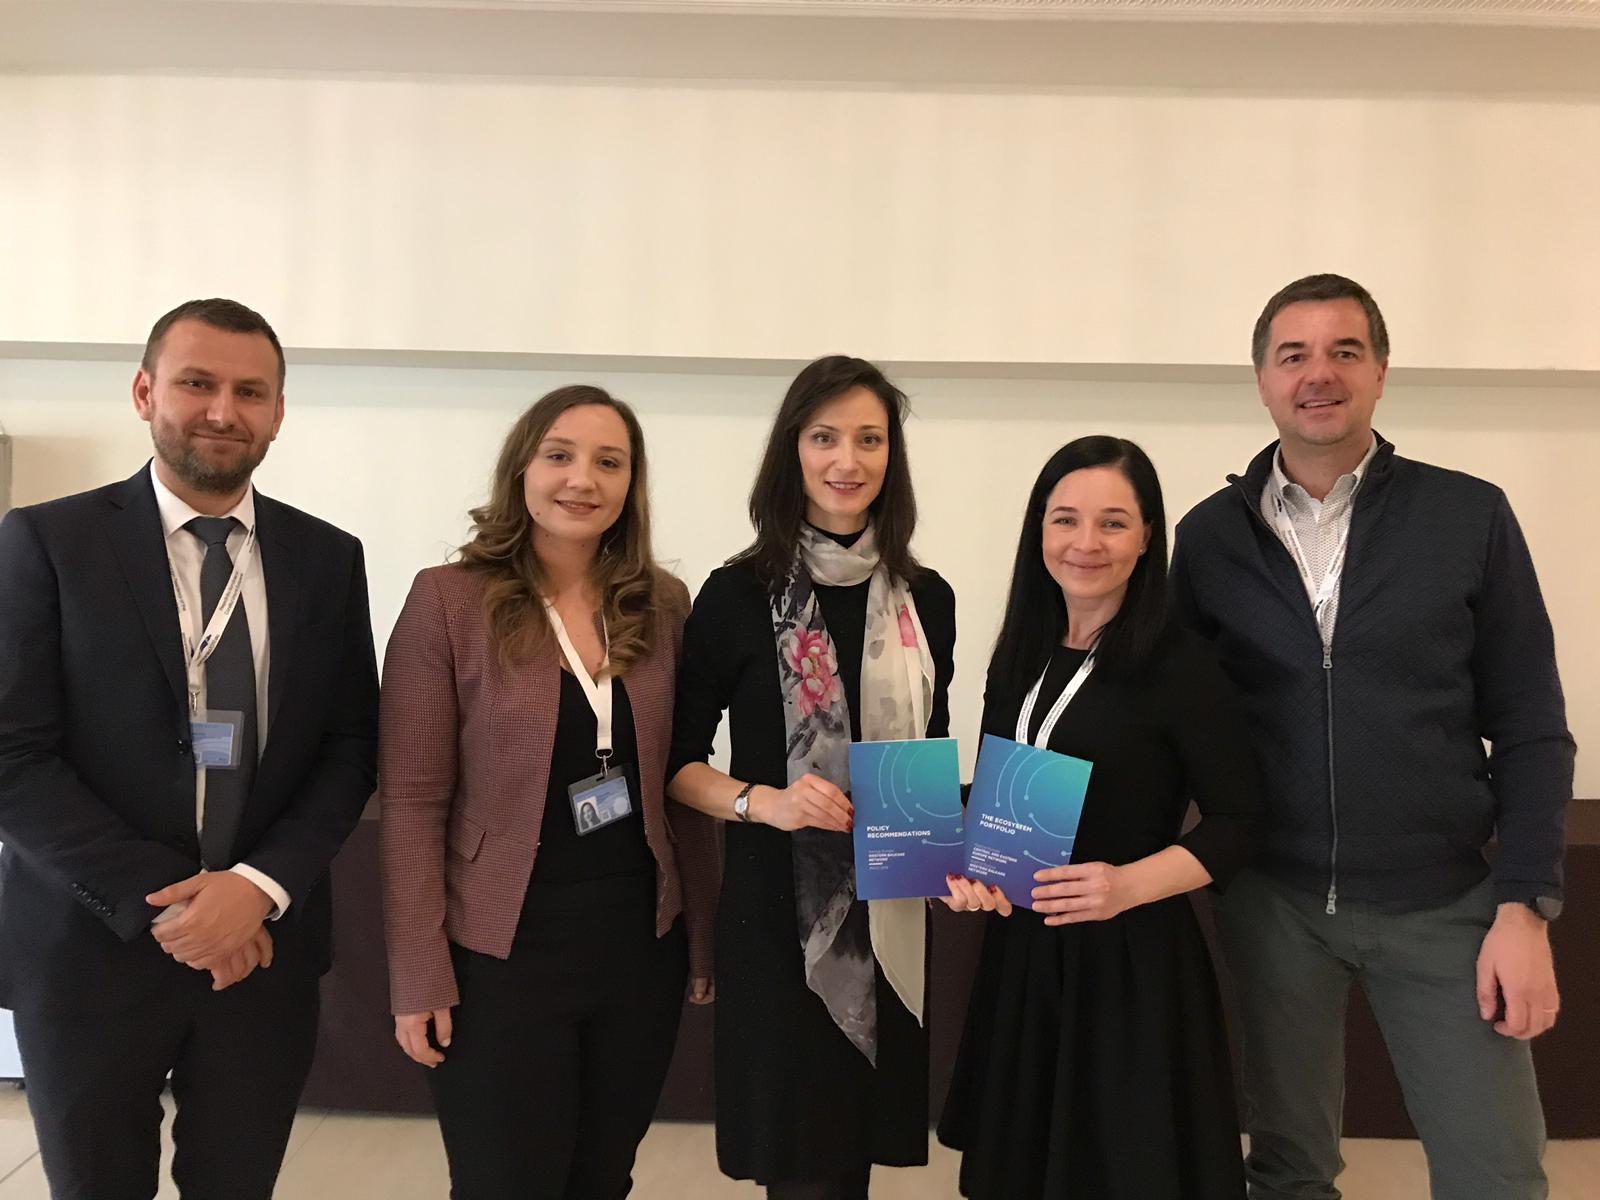 Commissioner Mariya Gabriel endorses the Western Balkan policy recommendations at Startup Europe Summit 2019